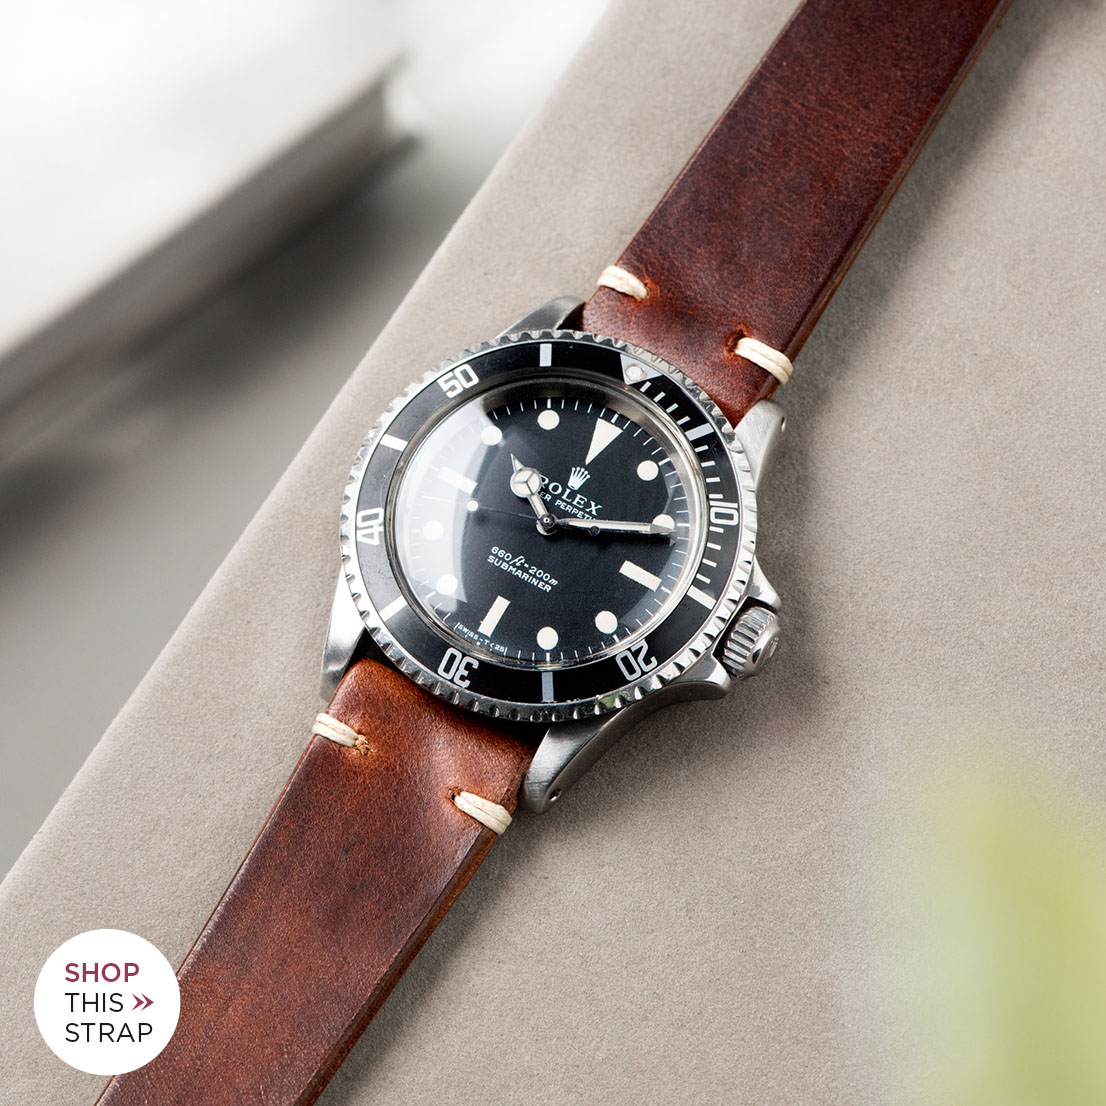 Bulang and Sons_Strap Guide_Rolex 5513 Submariner_SIENA BROWN LEATHER WATCH STRAP